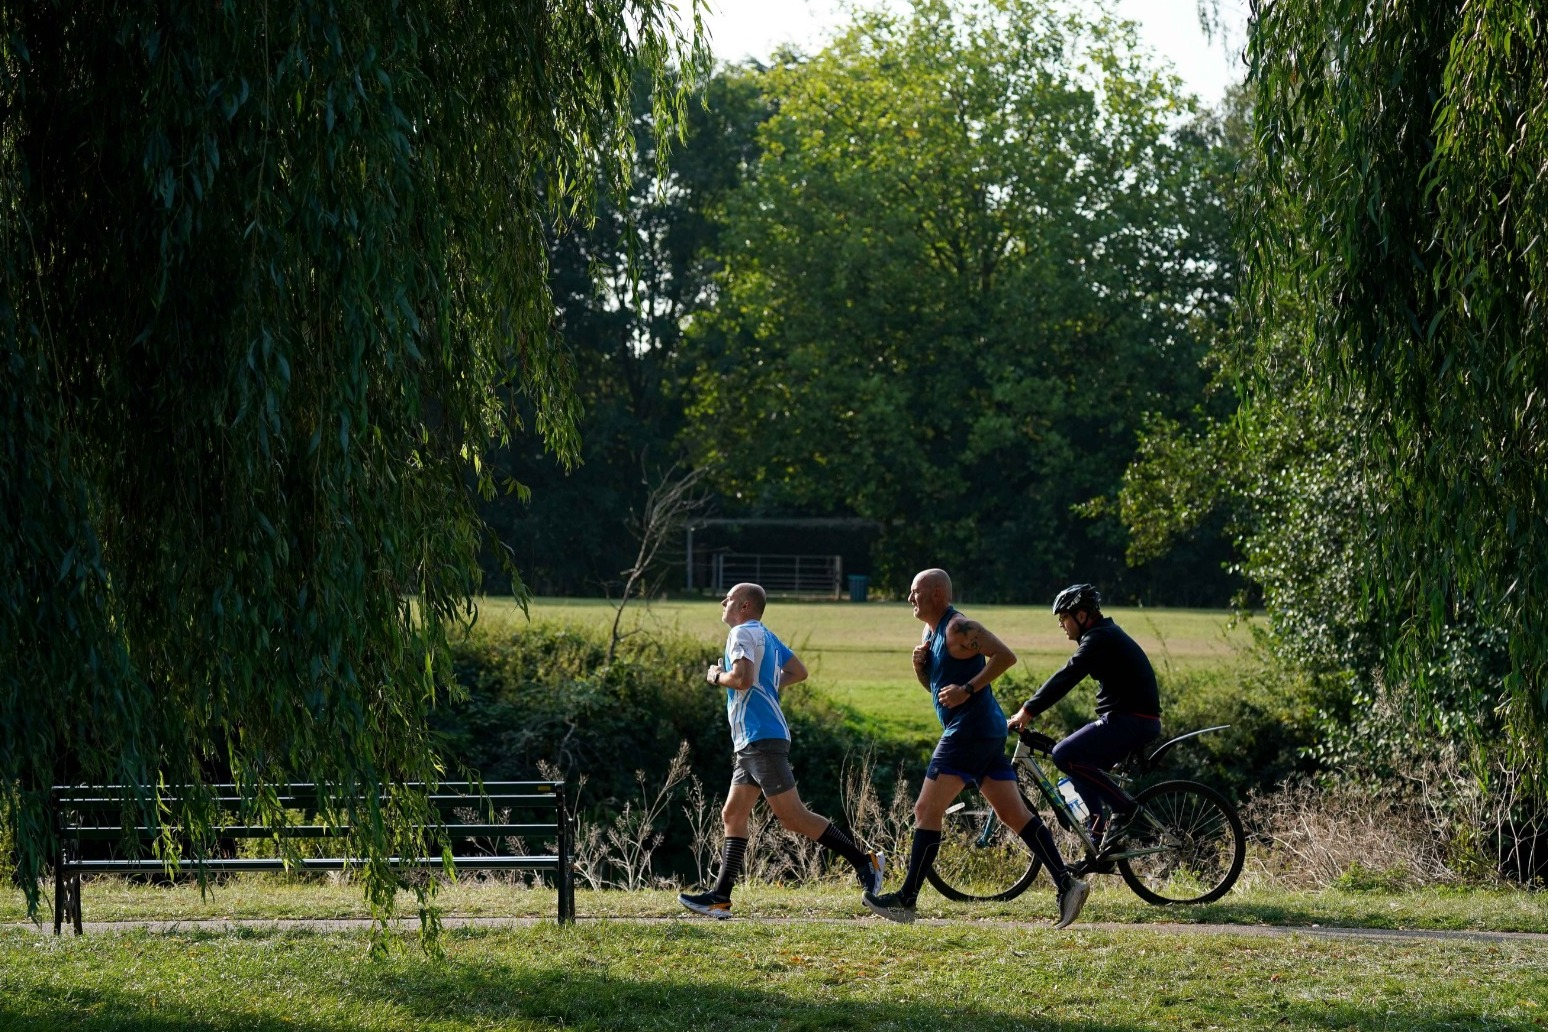 Parts of UK to bask in heatwave with 29C temperatures ahead thumbnail